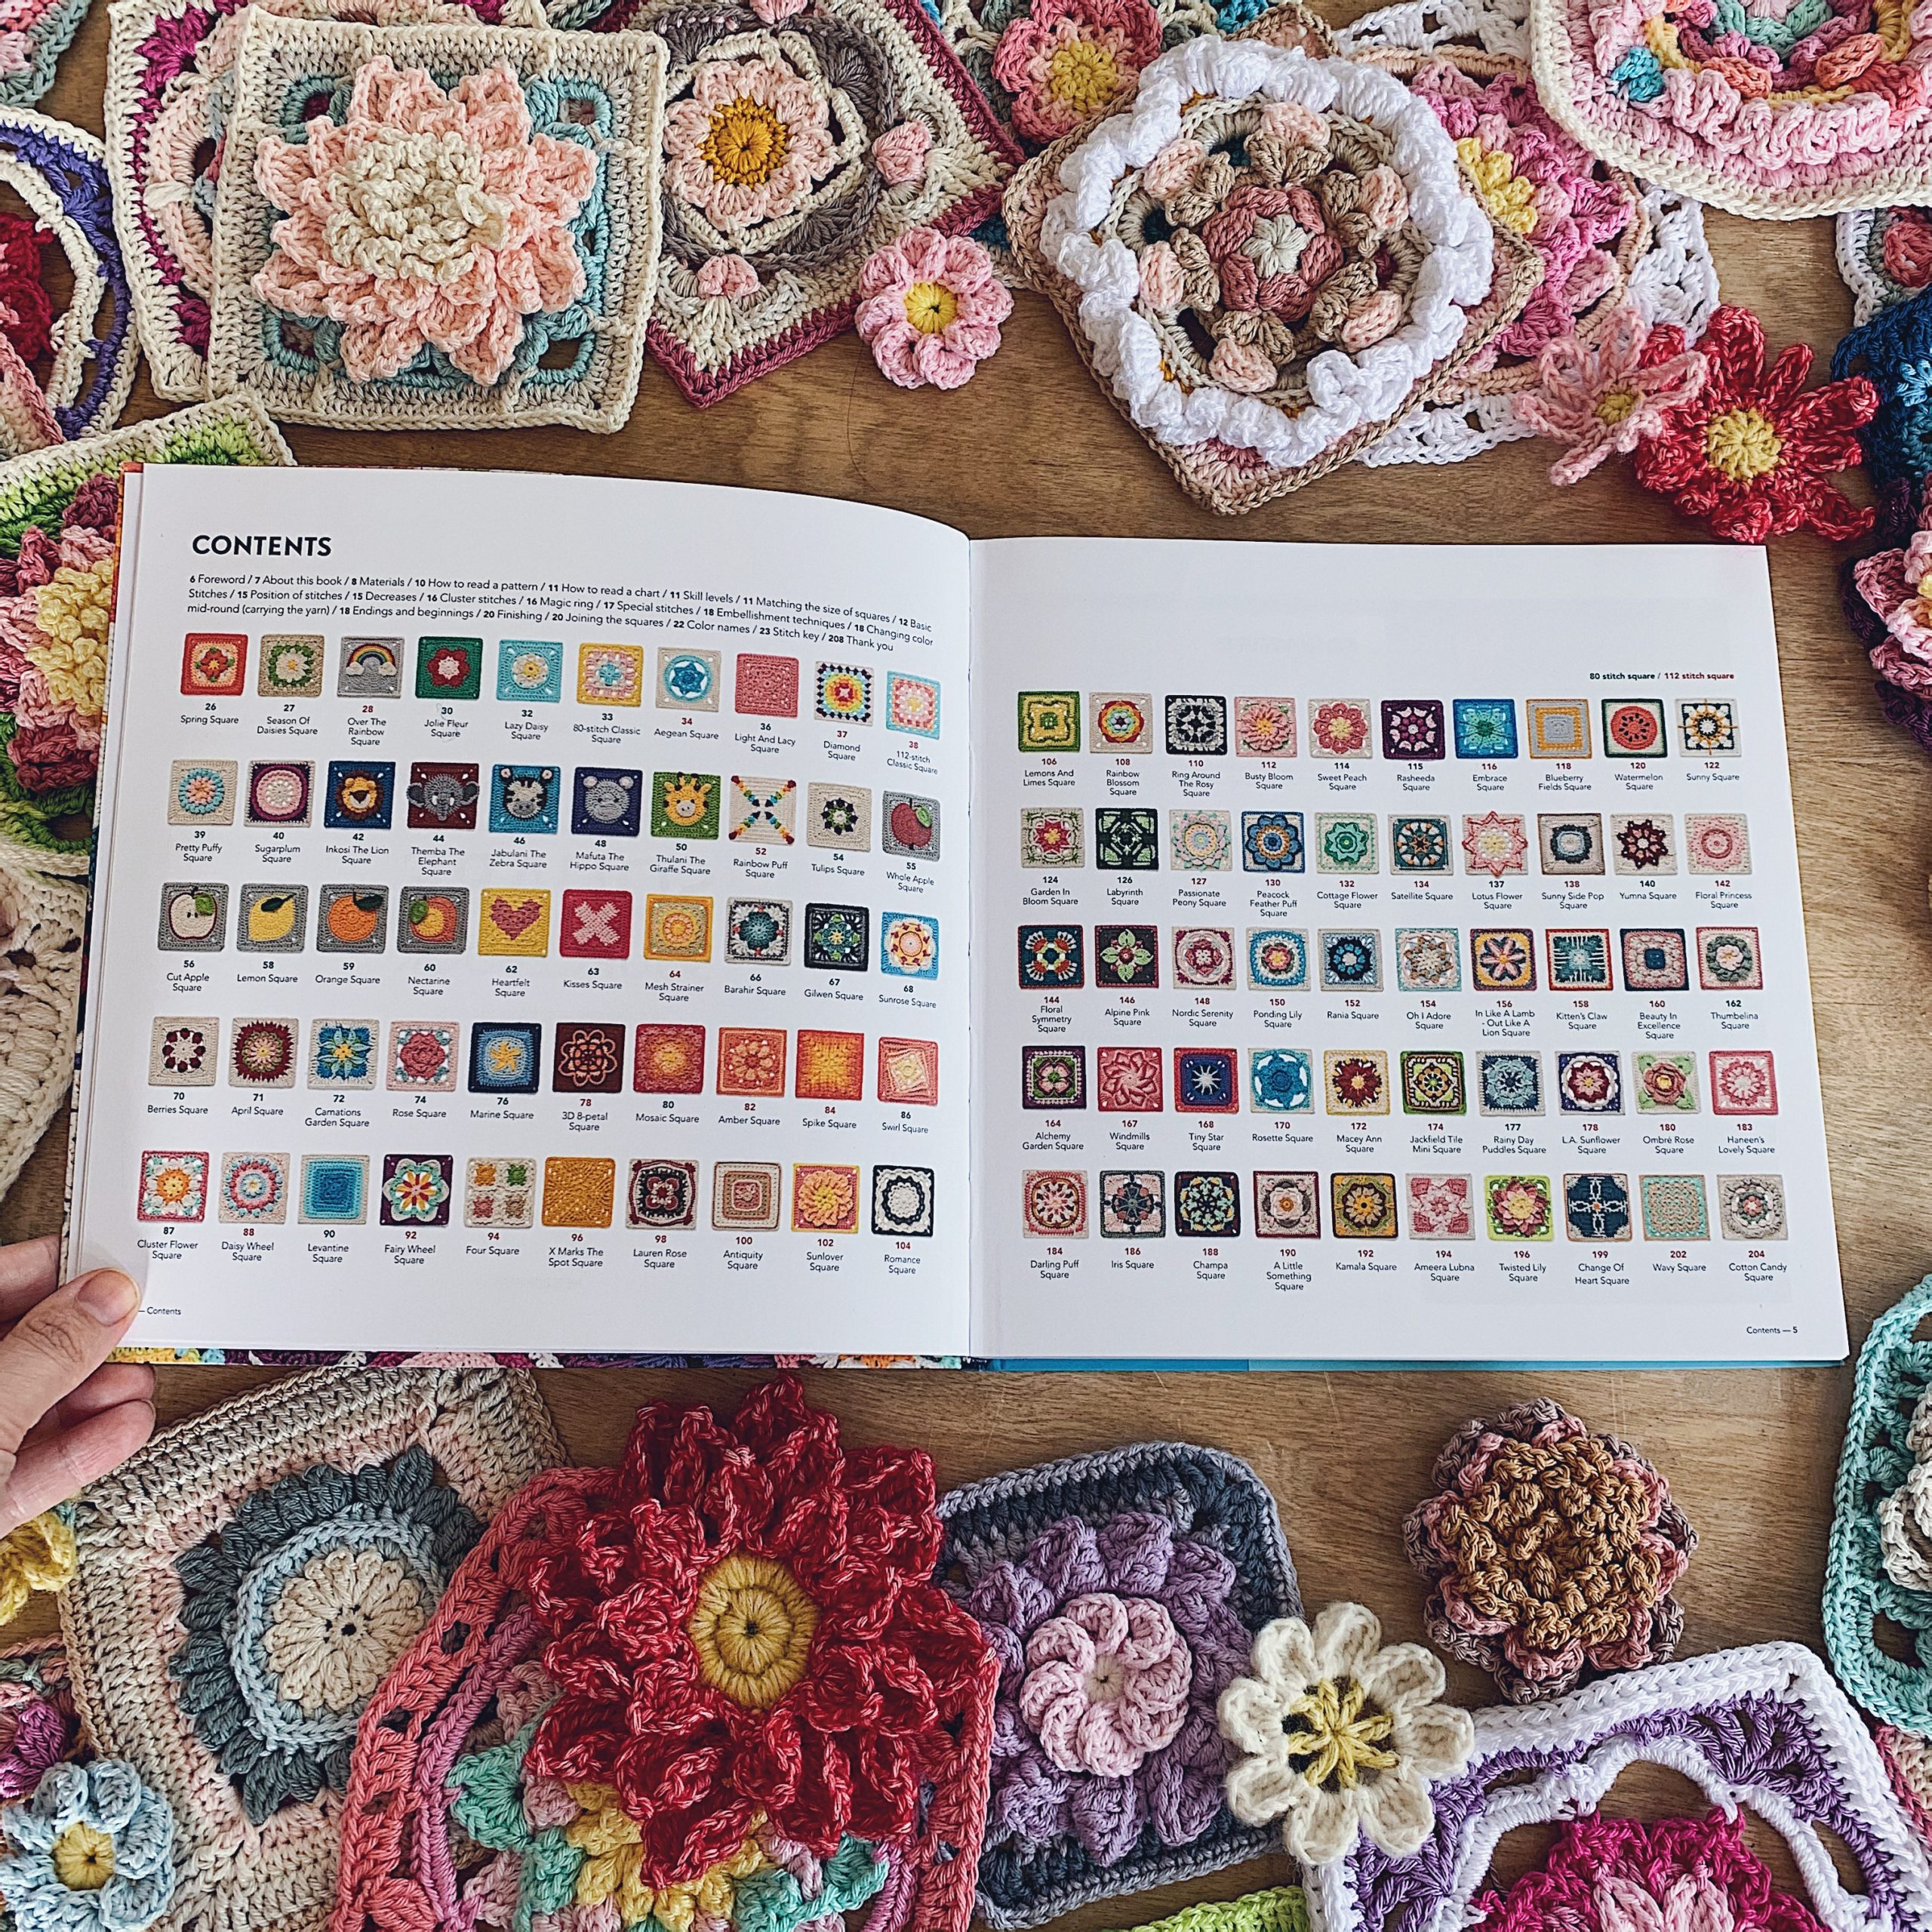 Therese-Eghult-SistersInStitch-The-Ultimate-Granny-Square-Sourcebook-Crochetedbytess